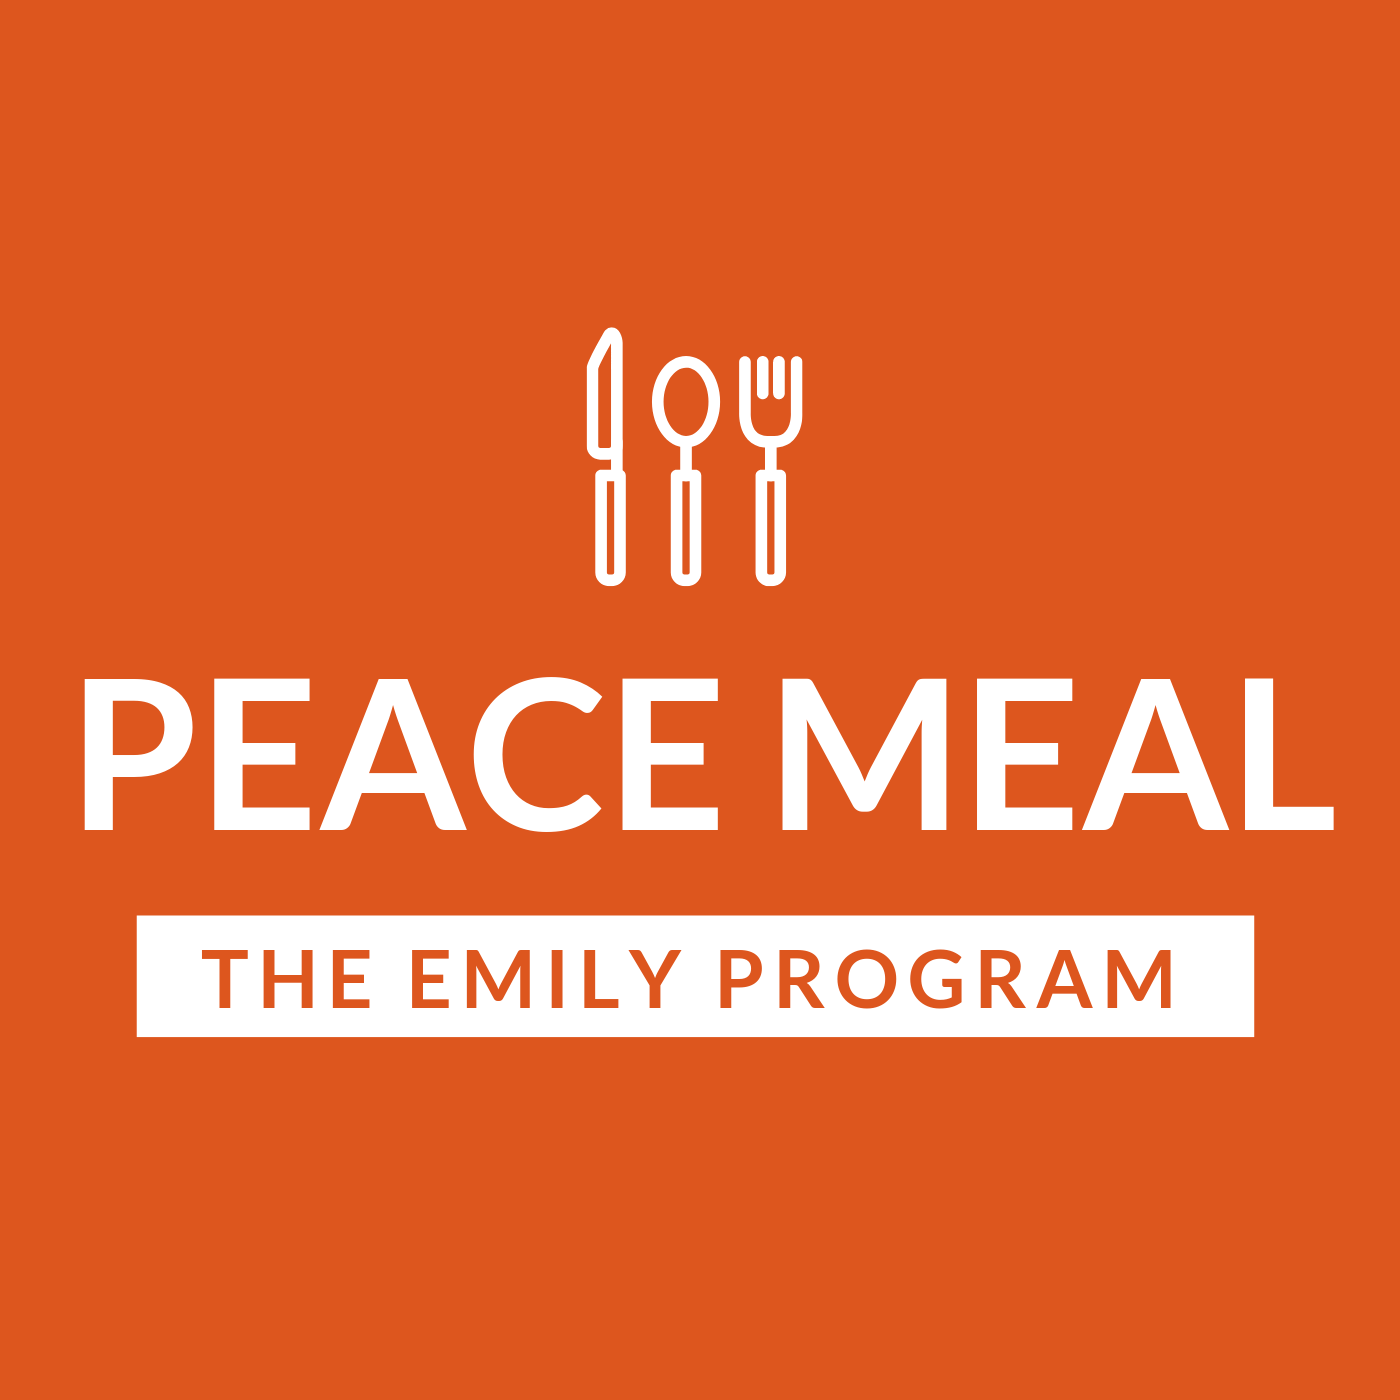 Podcast - Found, create, host, edit, produce, and manage the podcast Peace Meal.